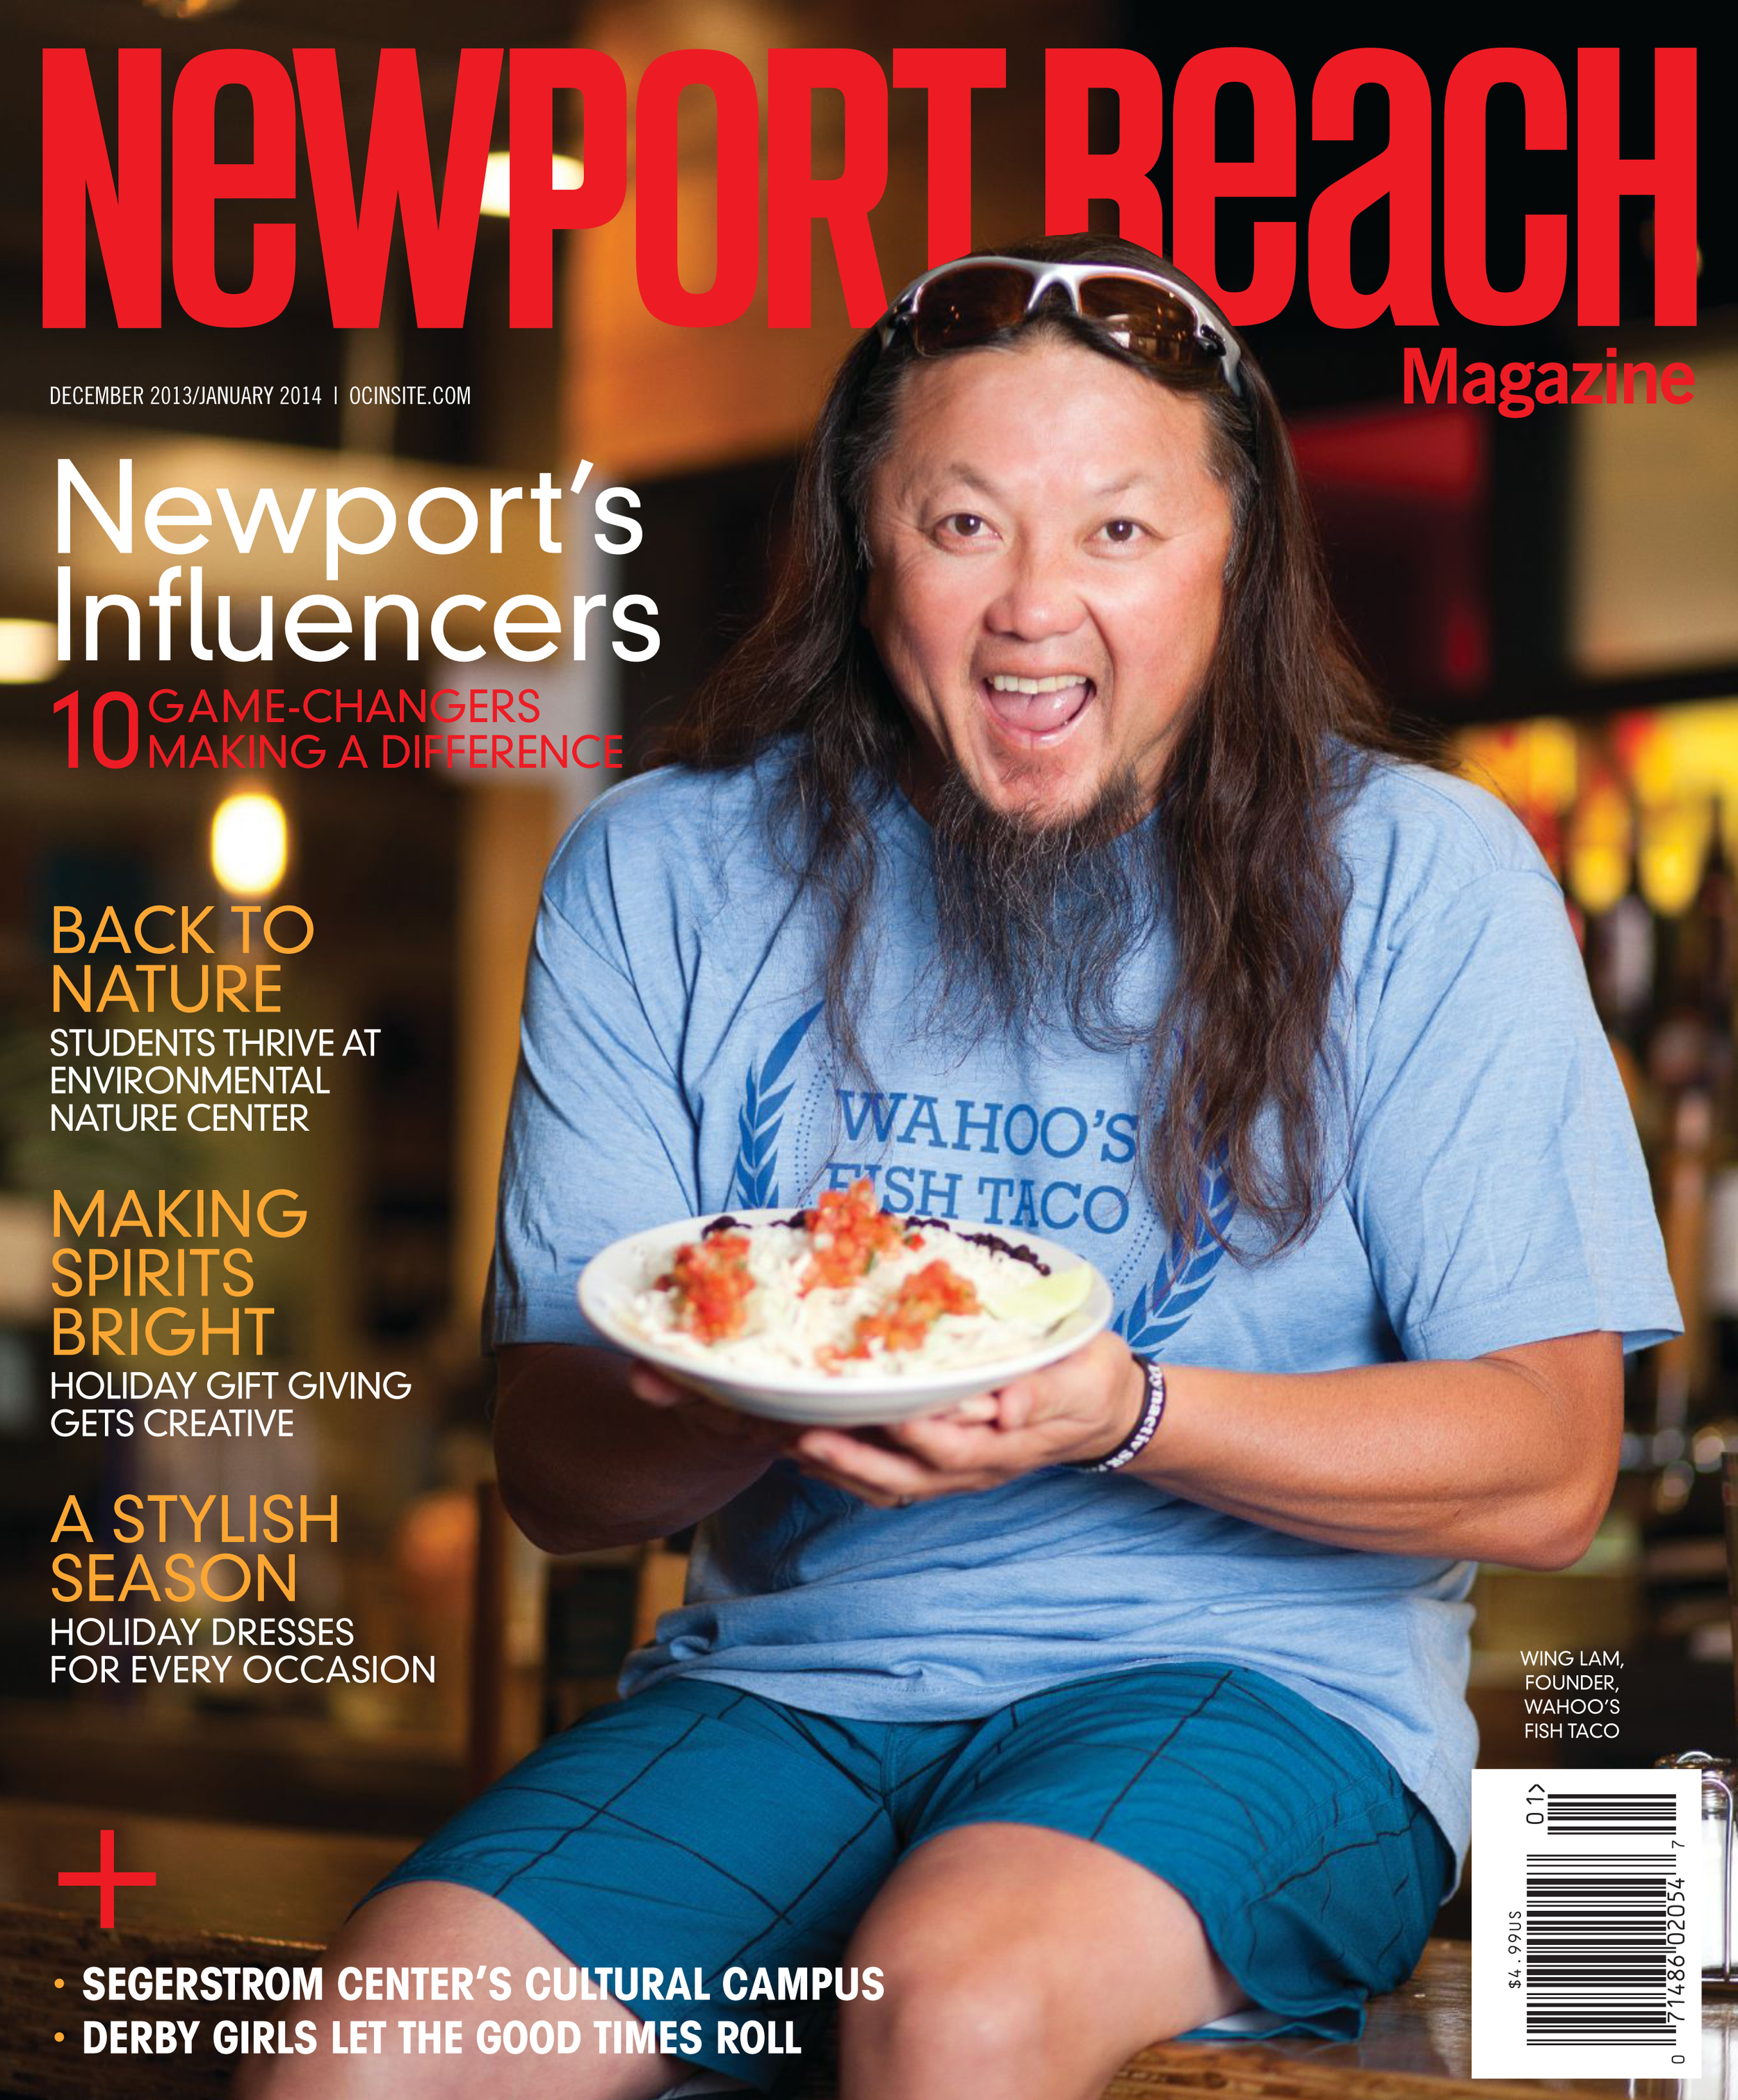 newport beach magazine dec 2013-1.jpg